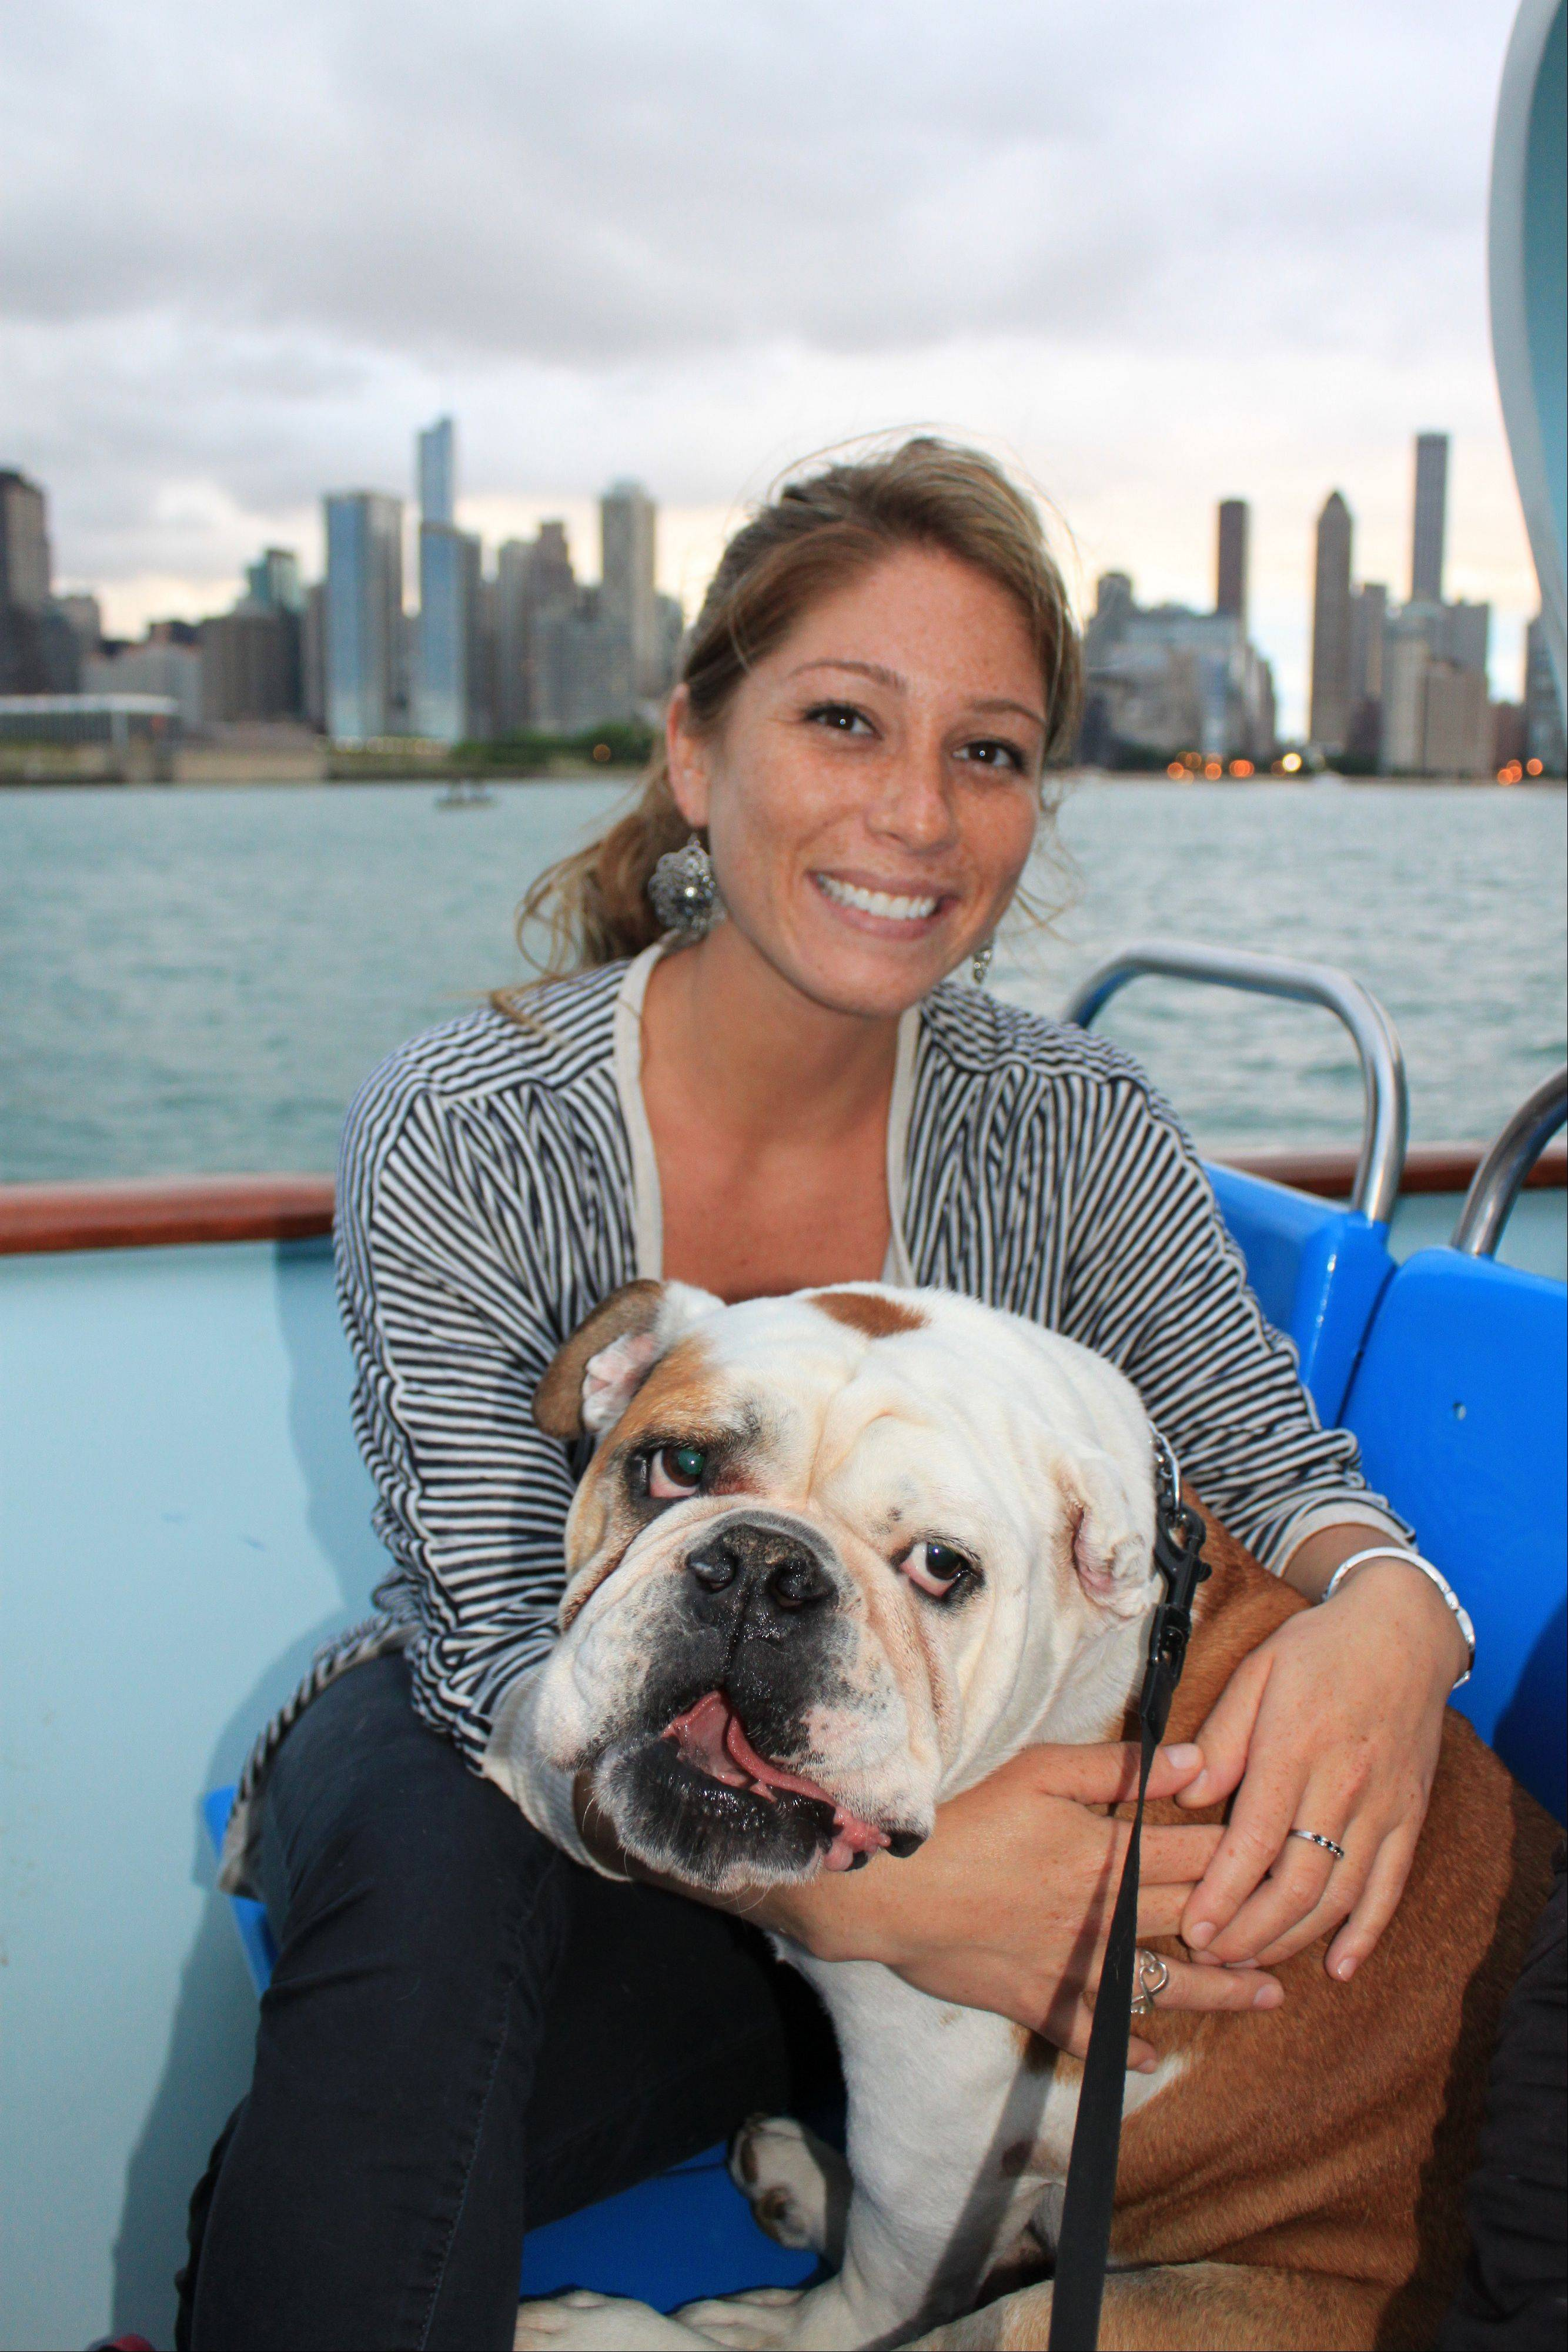 Dogs and their owners can enjoy Lake Michigan and the Chicago River on the Mercury Skyline Cruiseline's Chicago Canine Cruise.